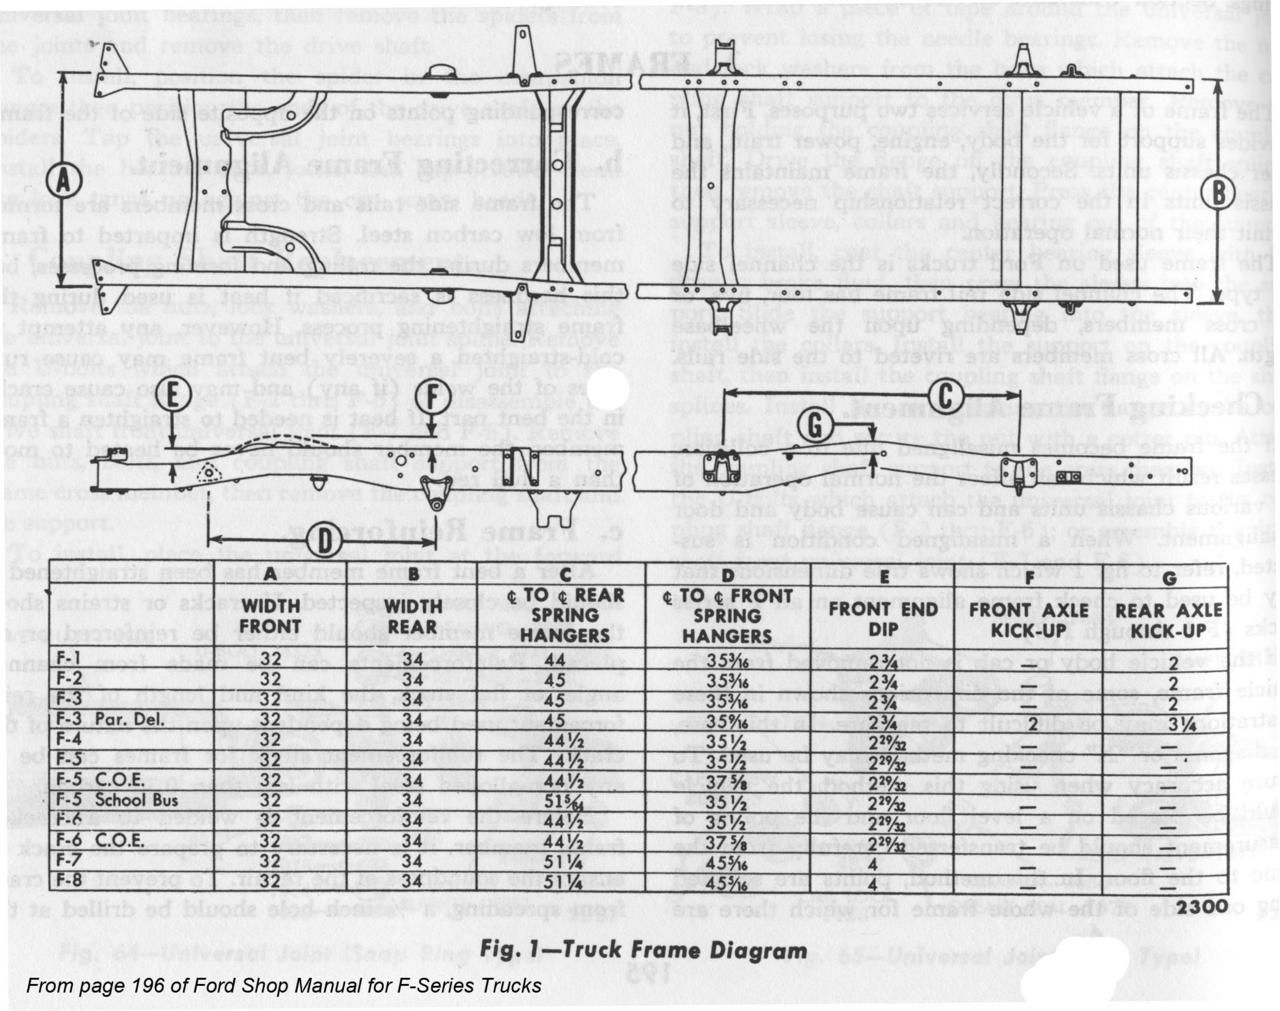 Ford F150 Frame Diagram Wiring Diagrams Schematic Chart 2001 Parts Lookup